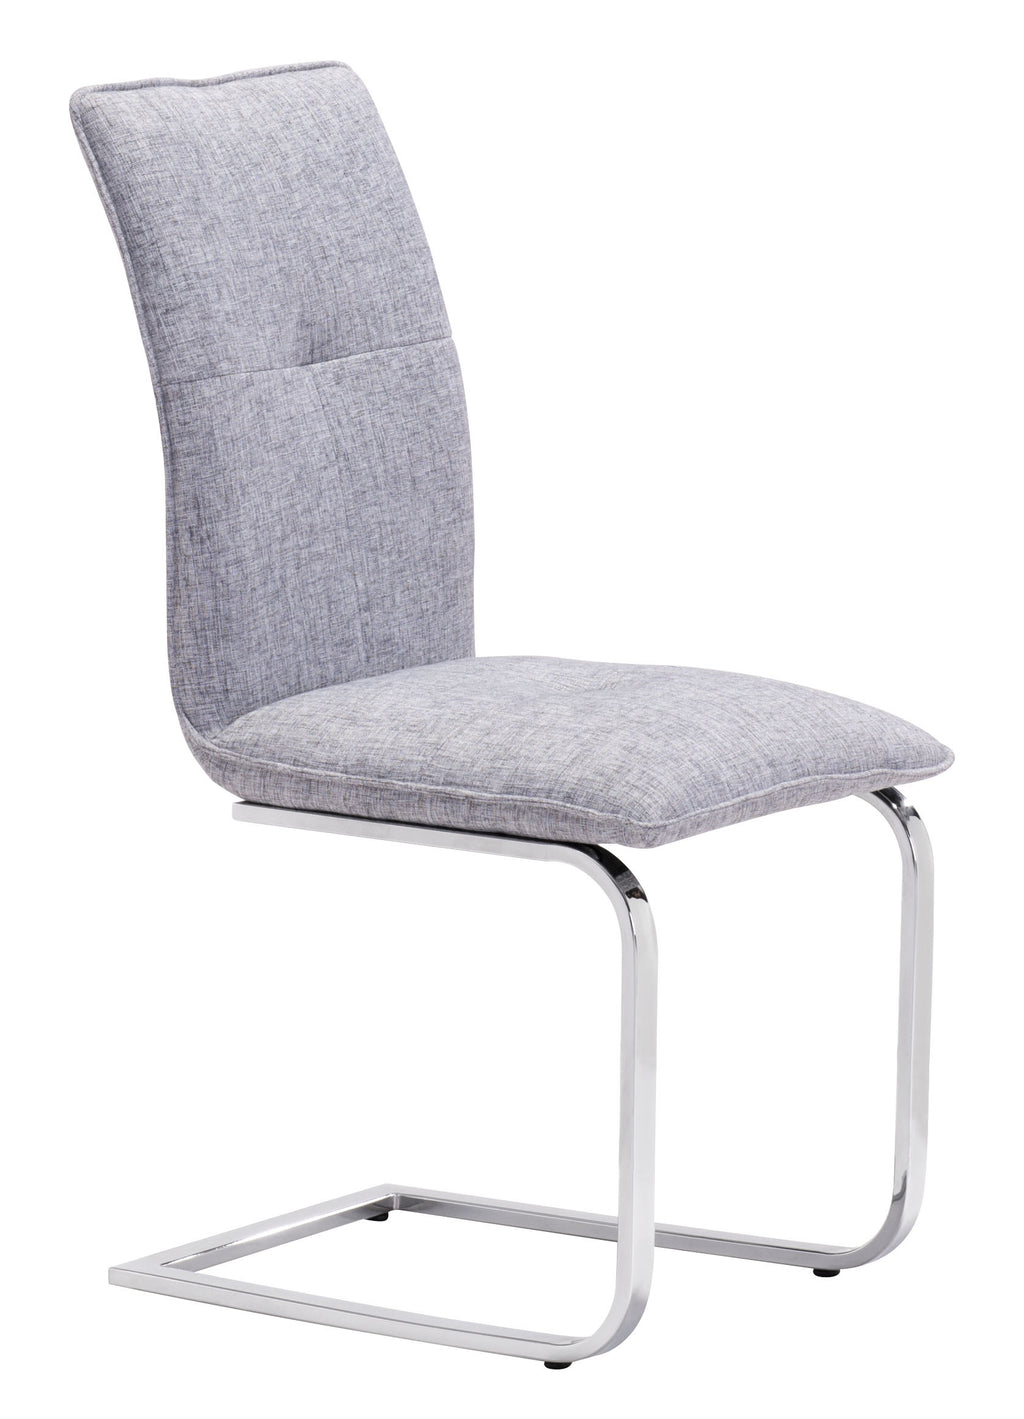 Anjou Dining Chair (Gray)